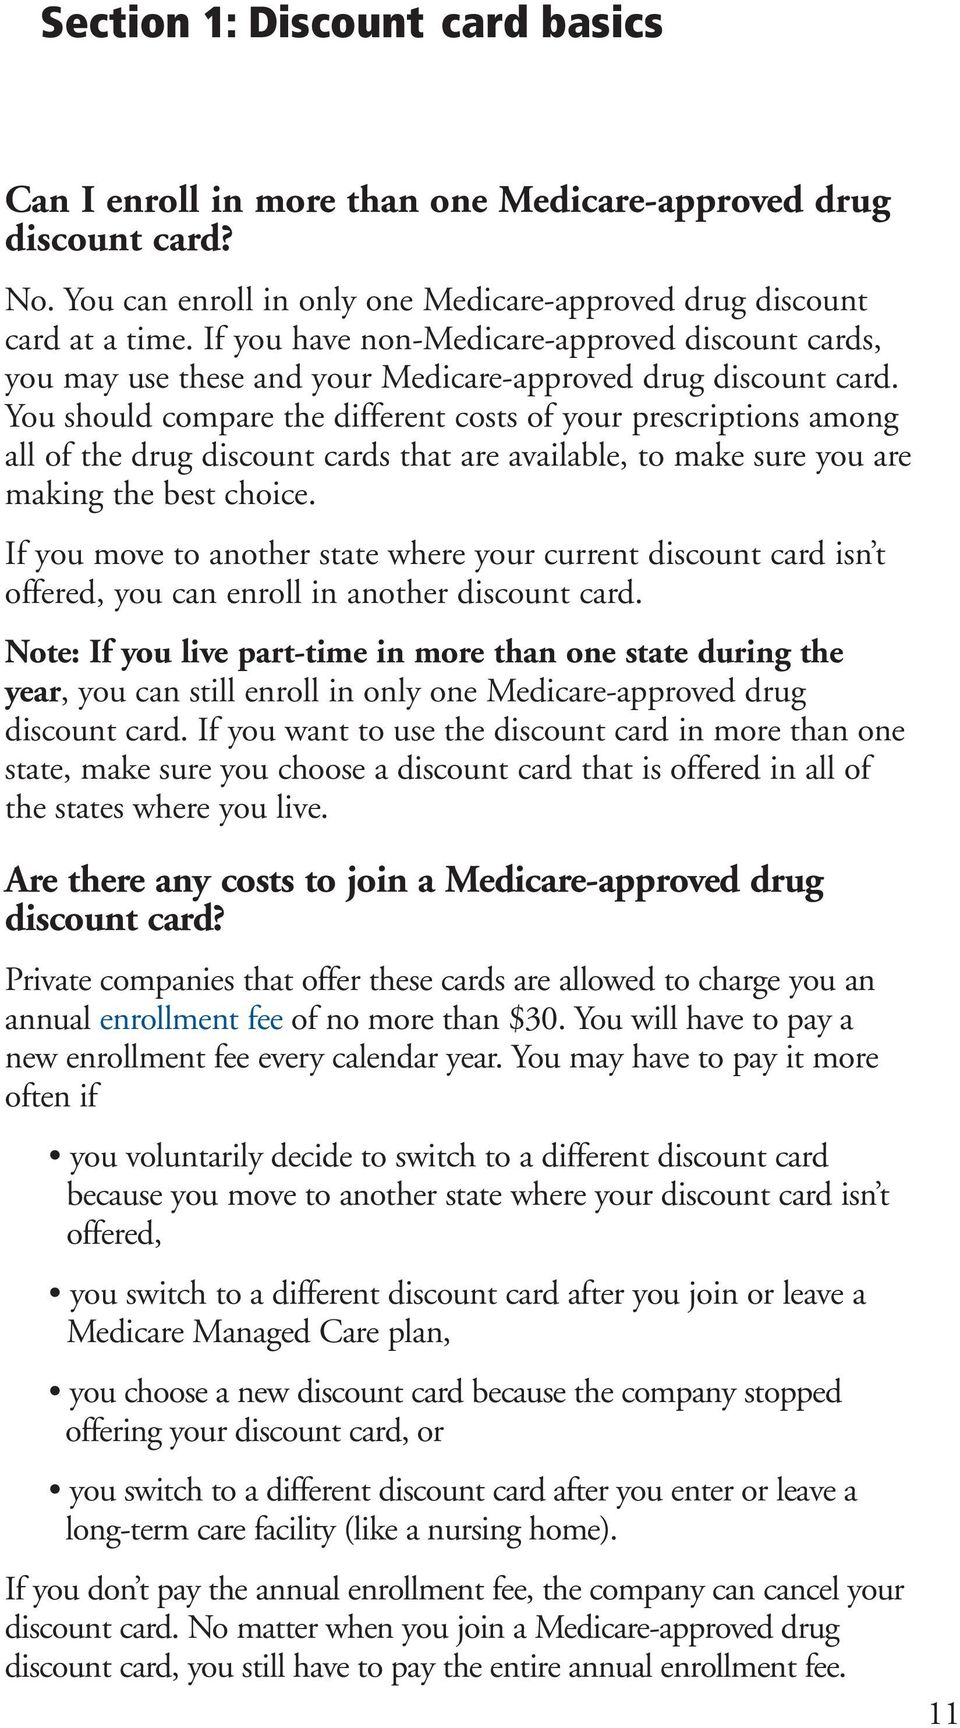 You should compare the different costs of your prescriptions among all of the drug discount cards that are available, to make sure you are making the best choice.